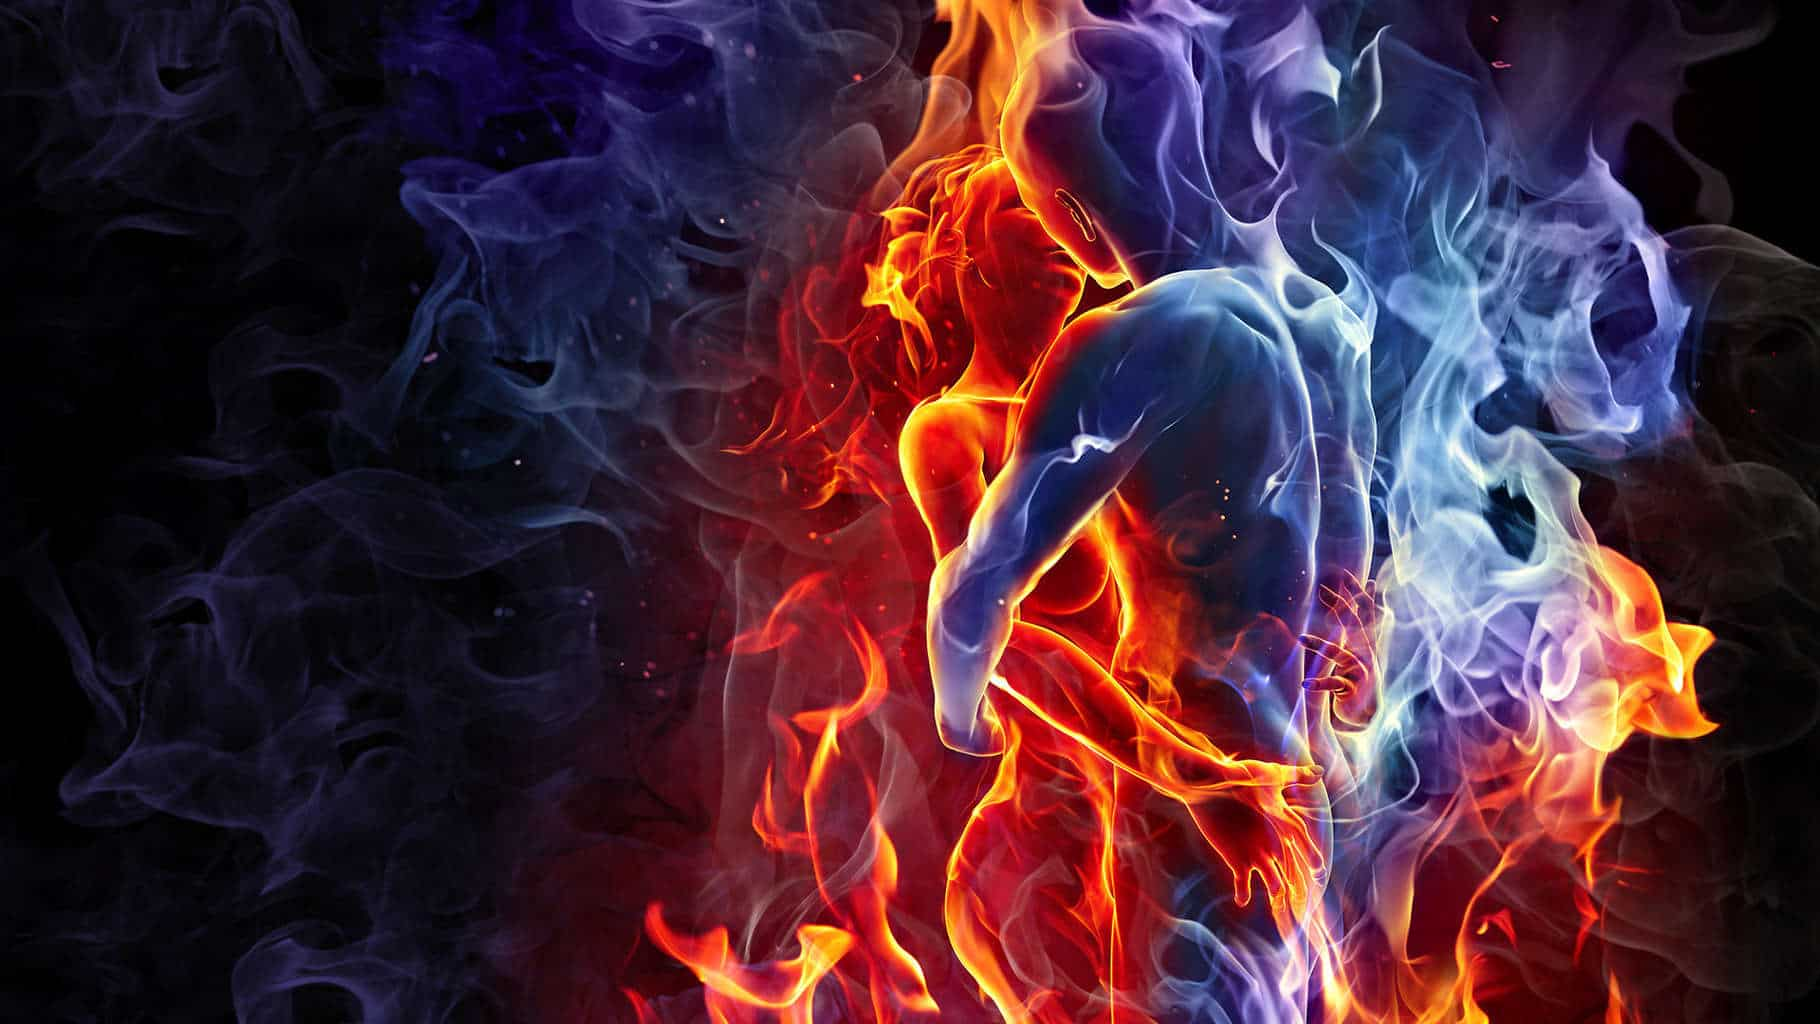 love-kiss-man-woman-silhouette-fire-smoke